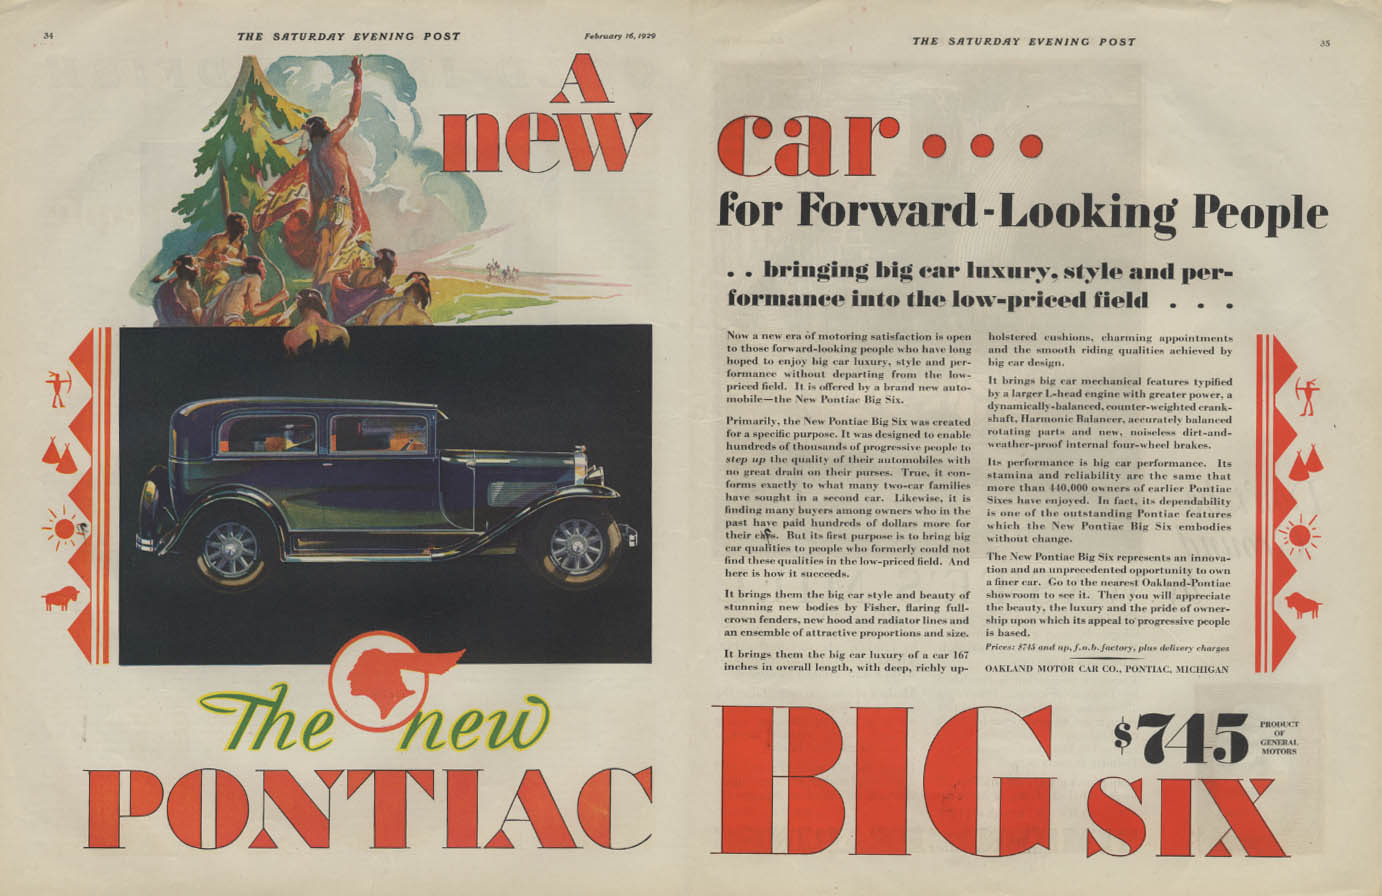 A new car for Forward-Looking People Pontiac Big Six 2-door Sedan ad 1929